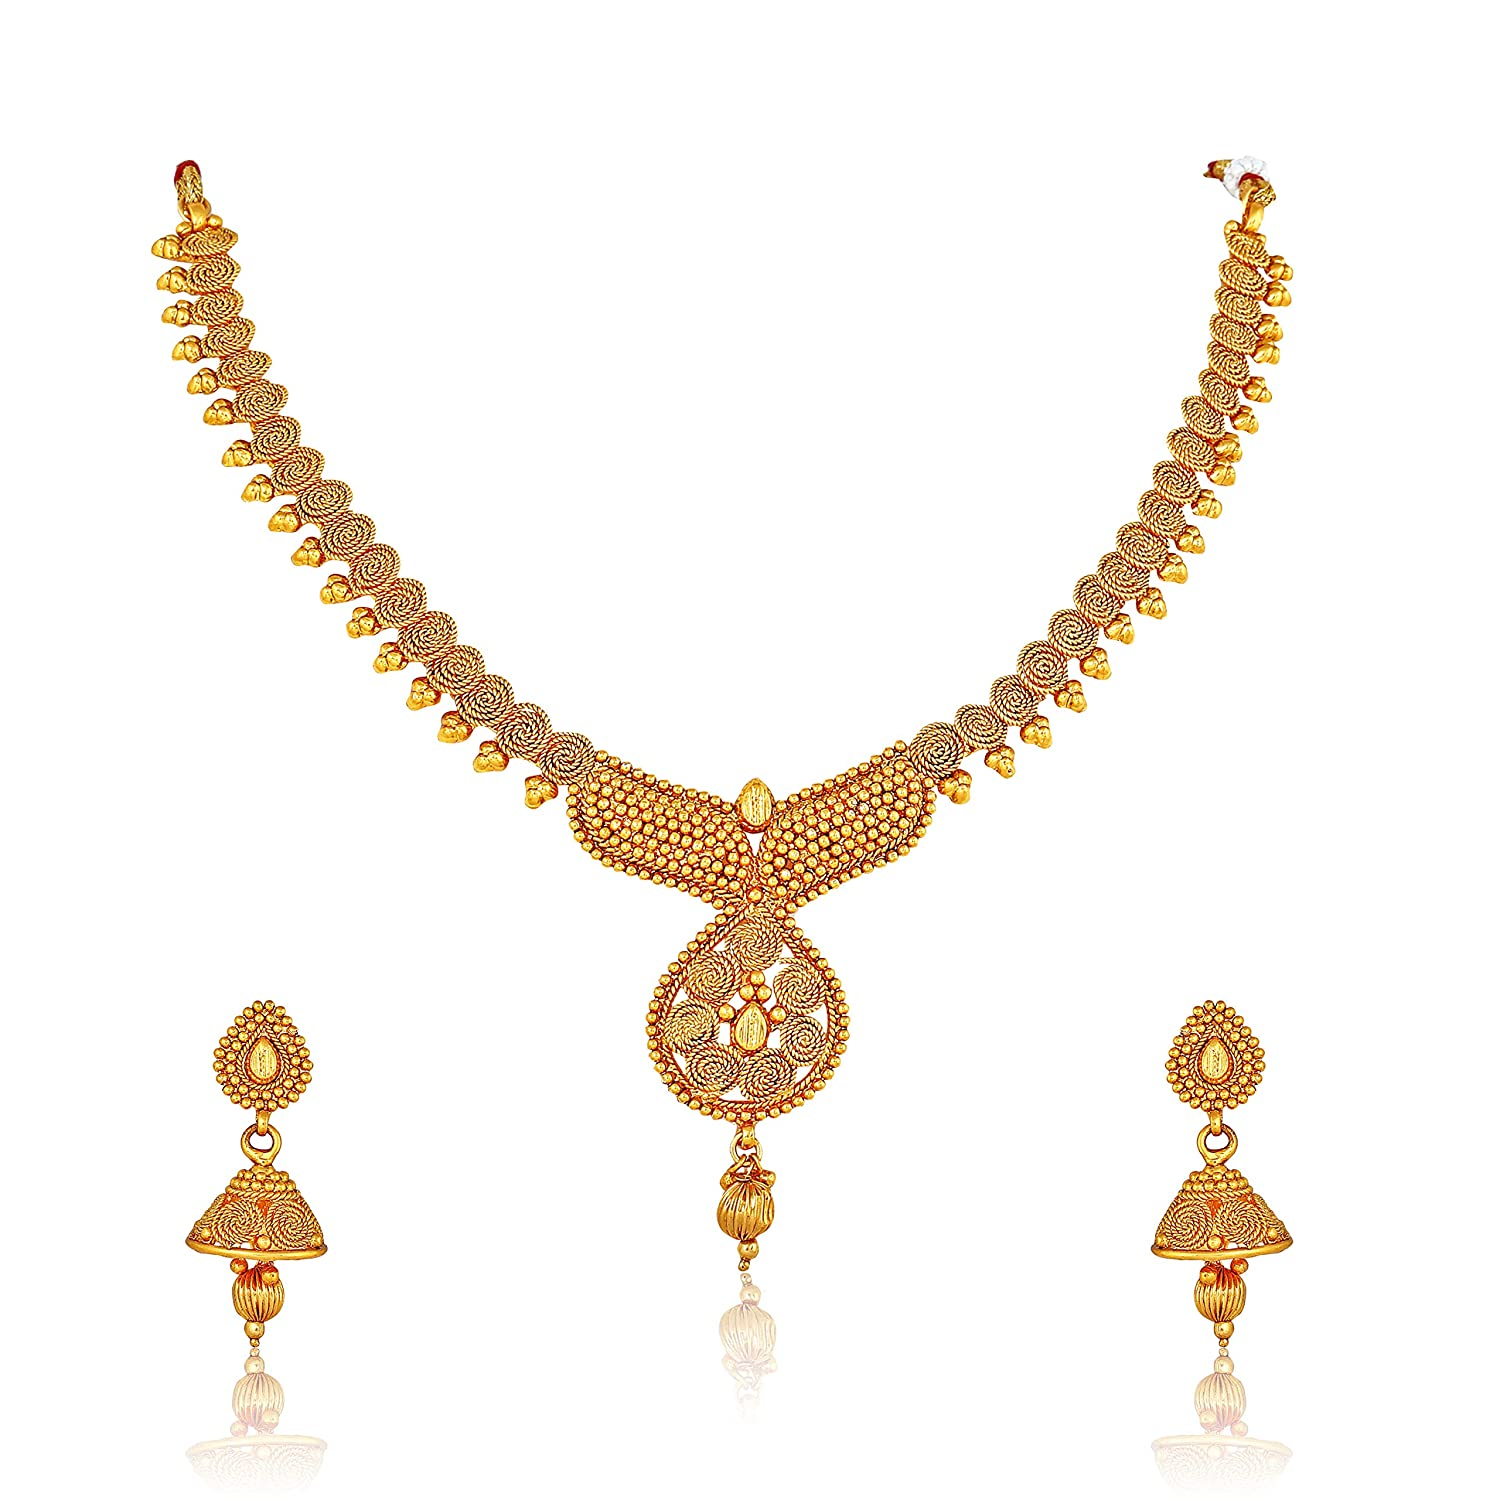 Ethnic South Indian Bridal Jewelry Traditional Pearl Necklace Earrings Tikka Set New Varieties Are Introduced One After Another Sets